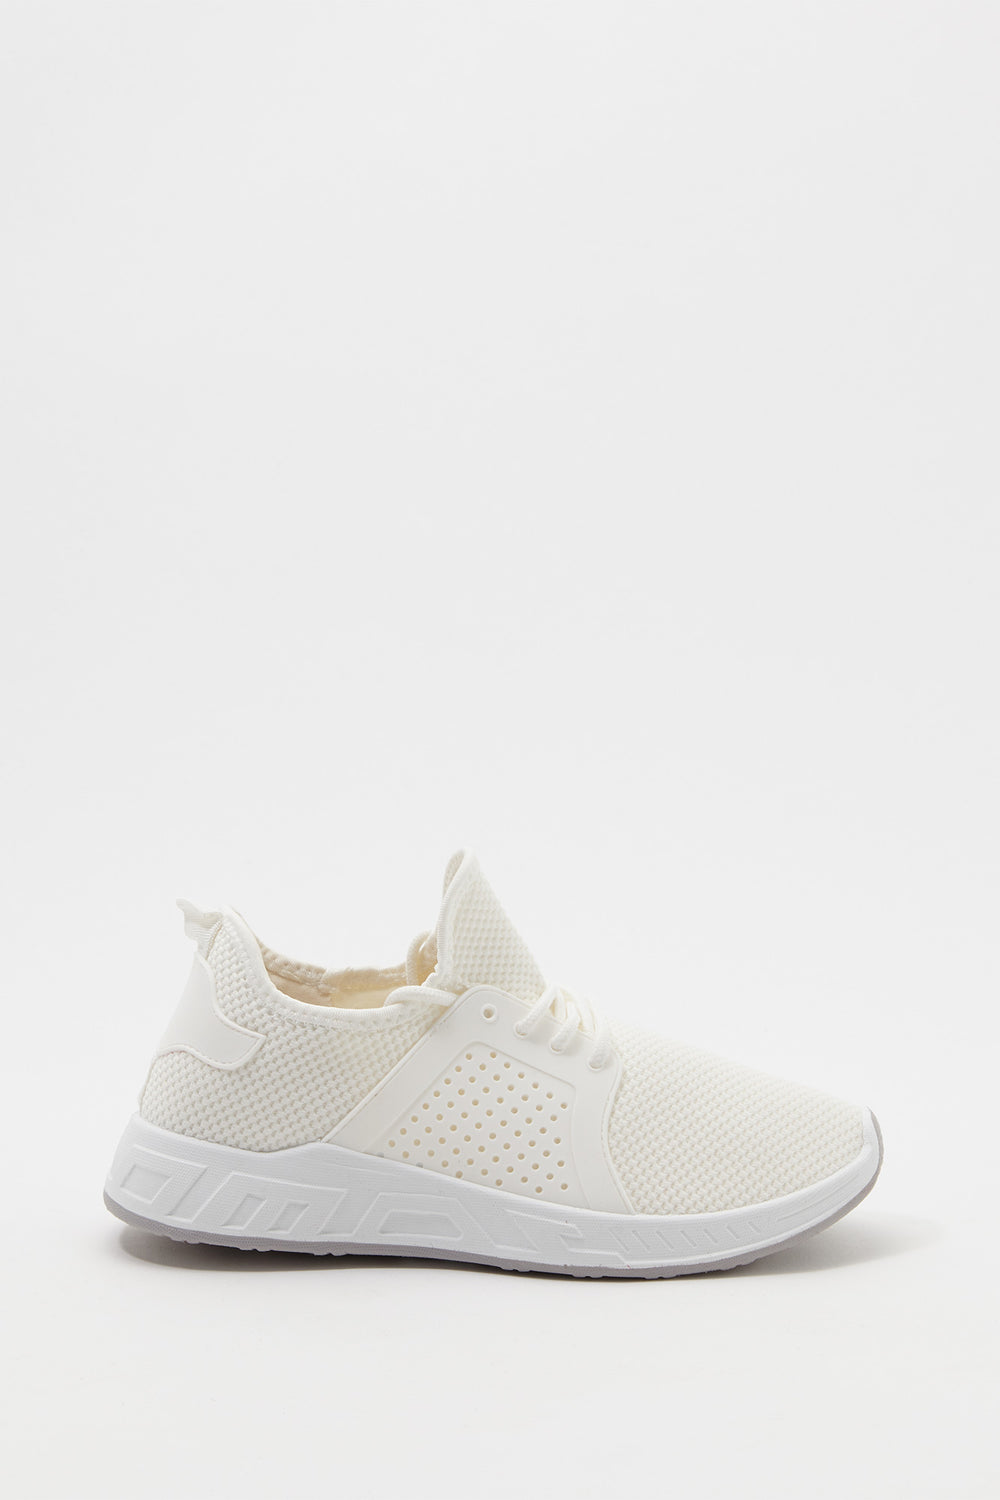 Mesh Perforated Sneaker White